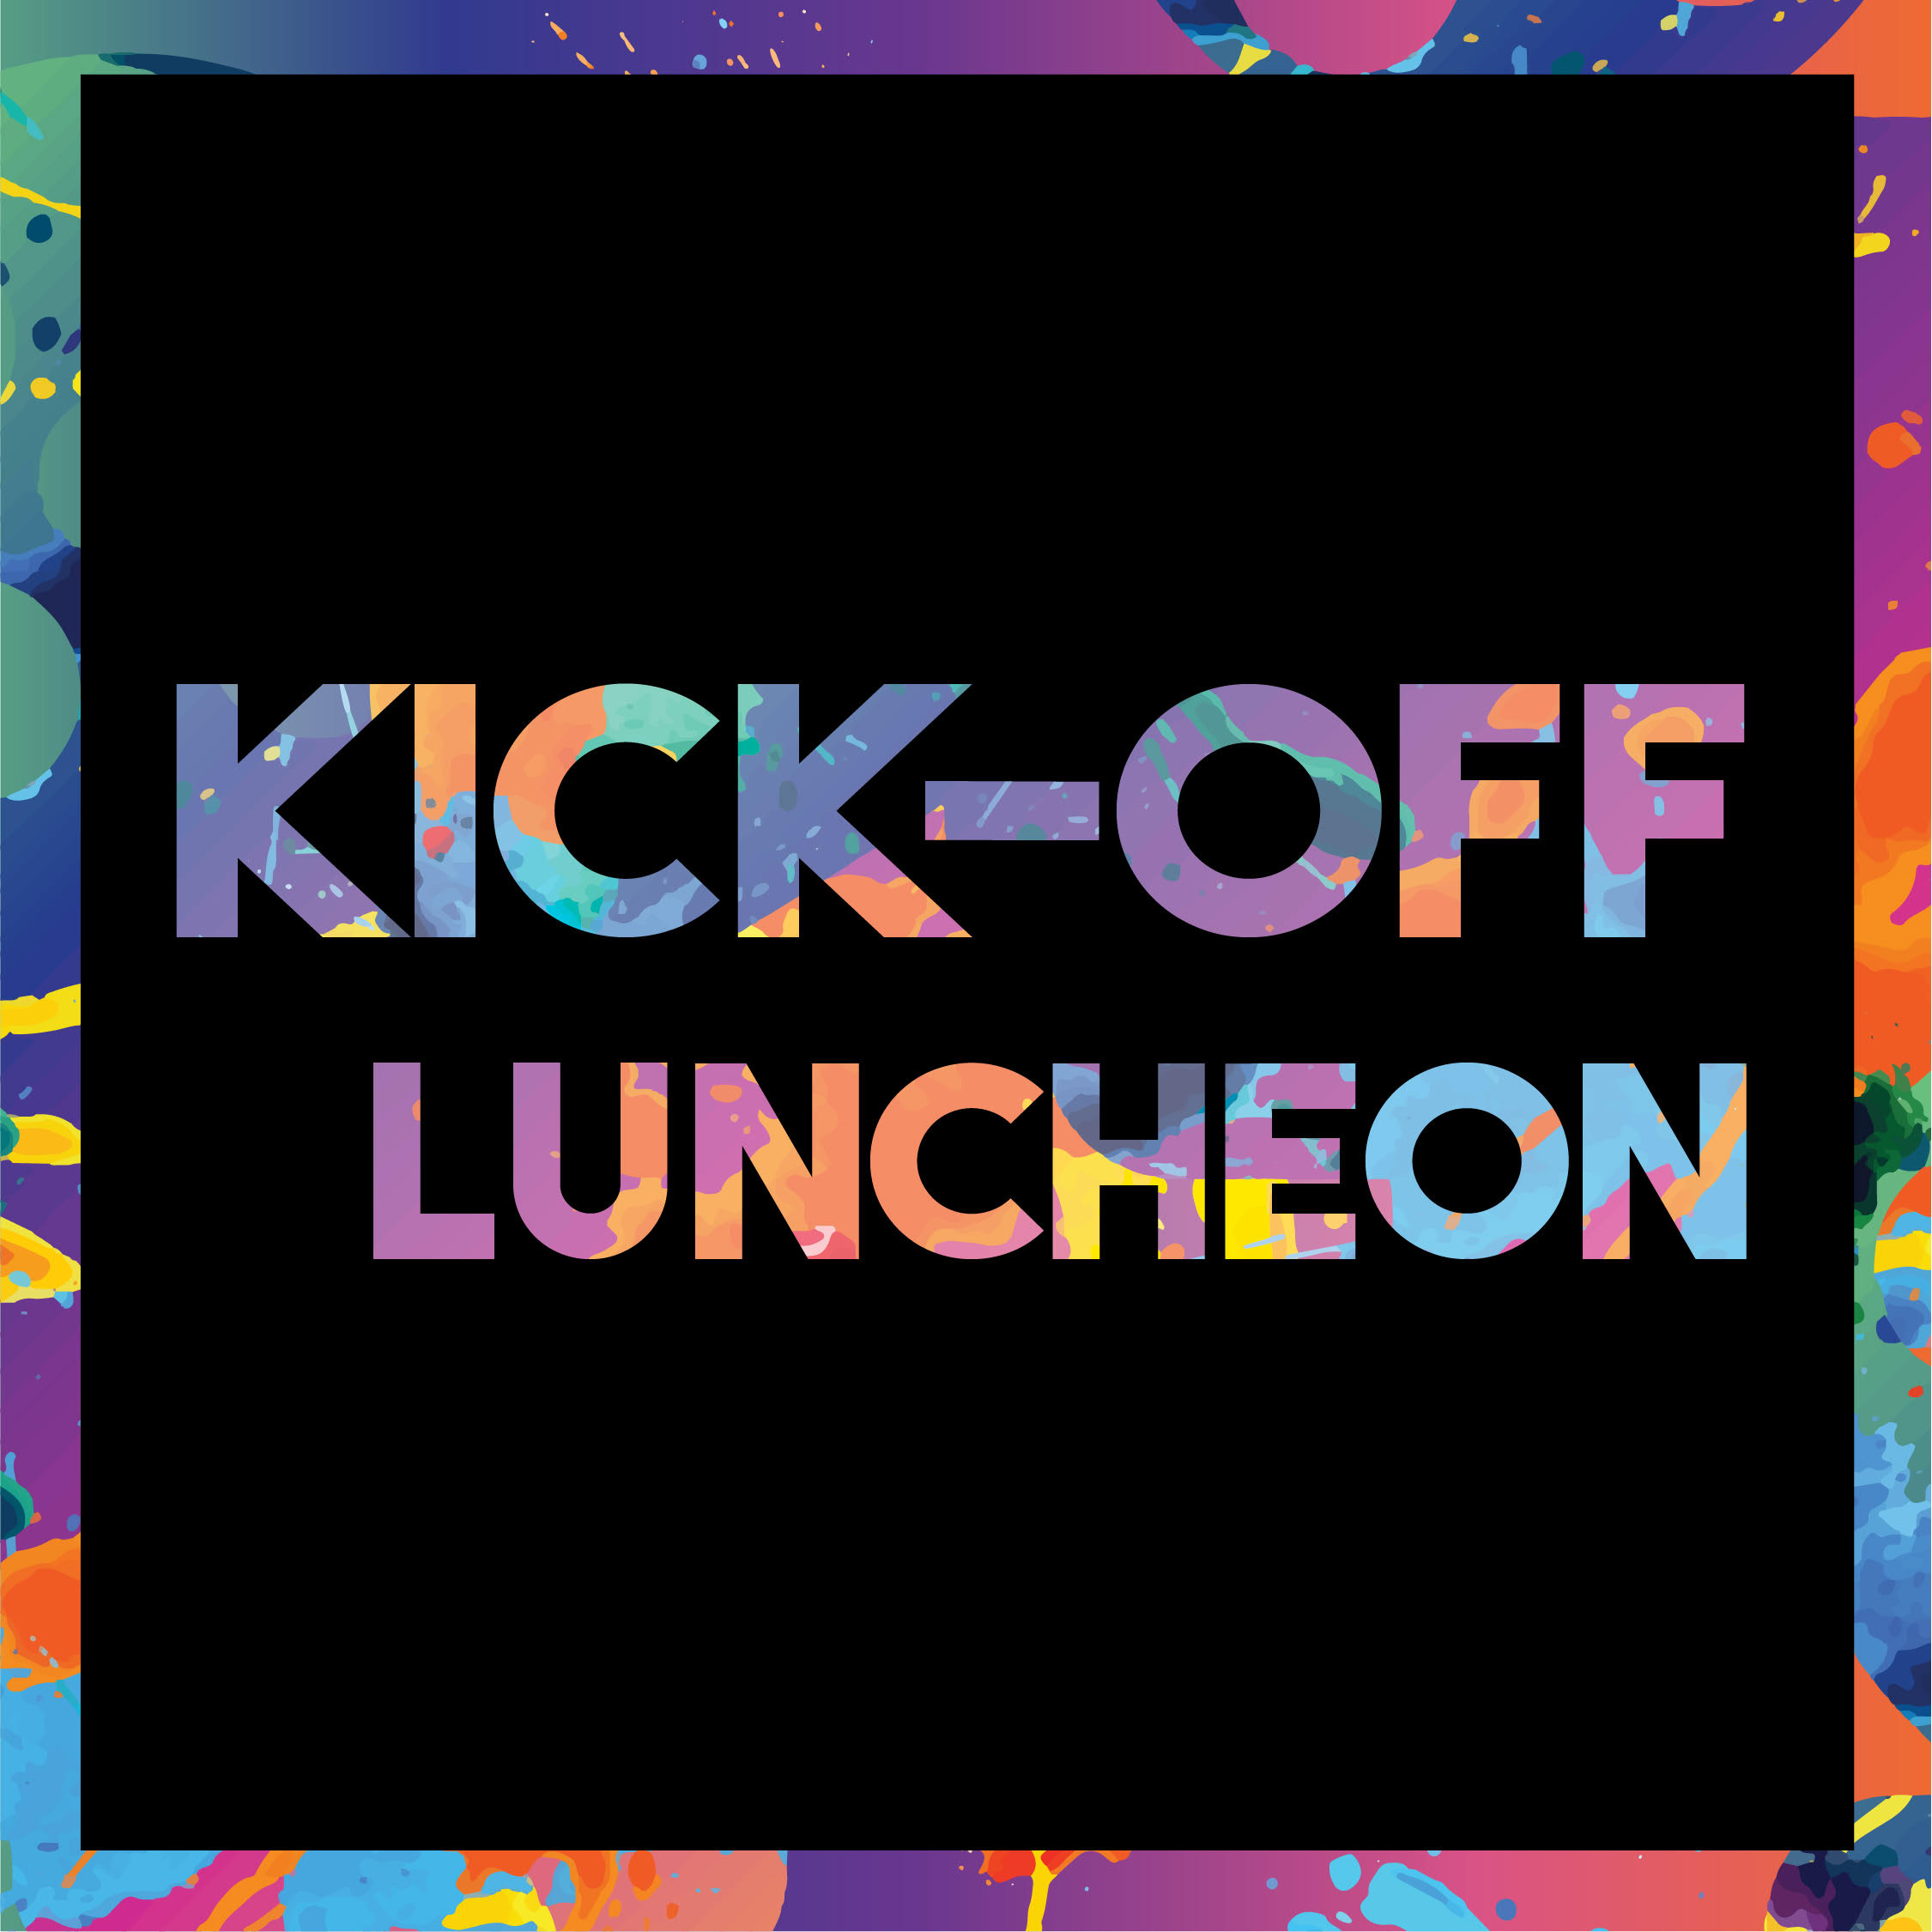 KICK-OFF LUNCHEON